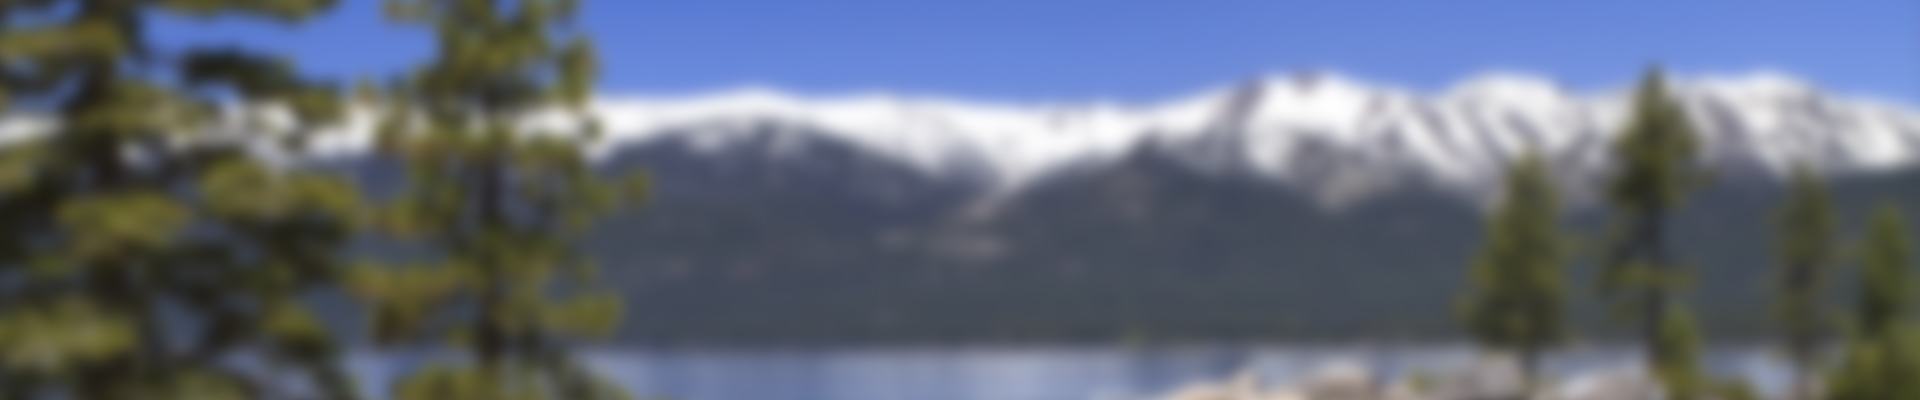 Tahoe_Blurred